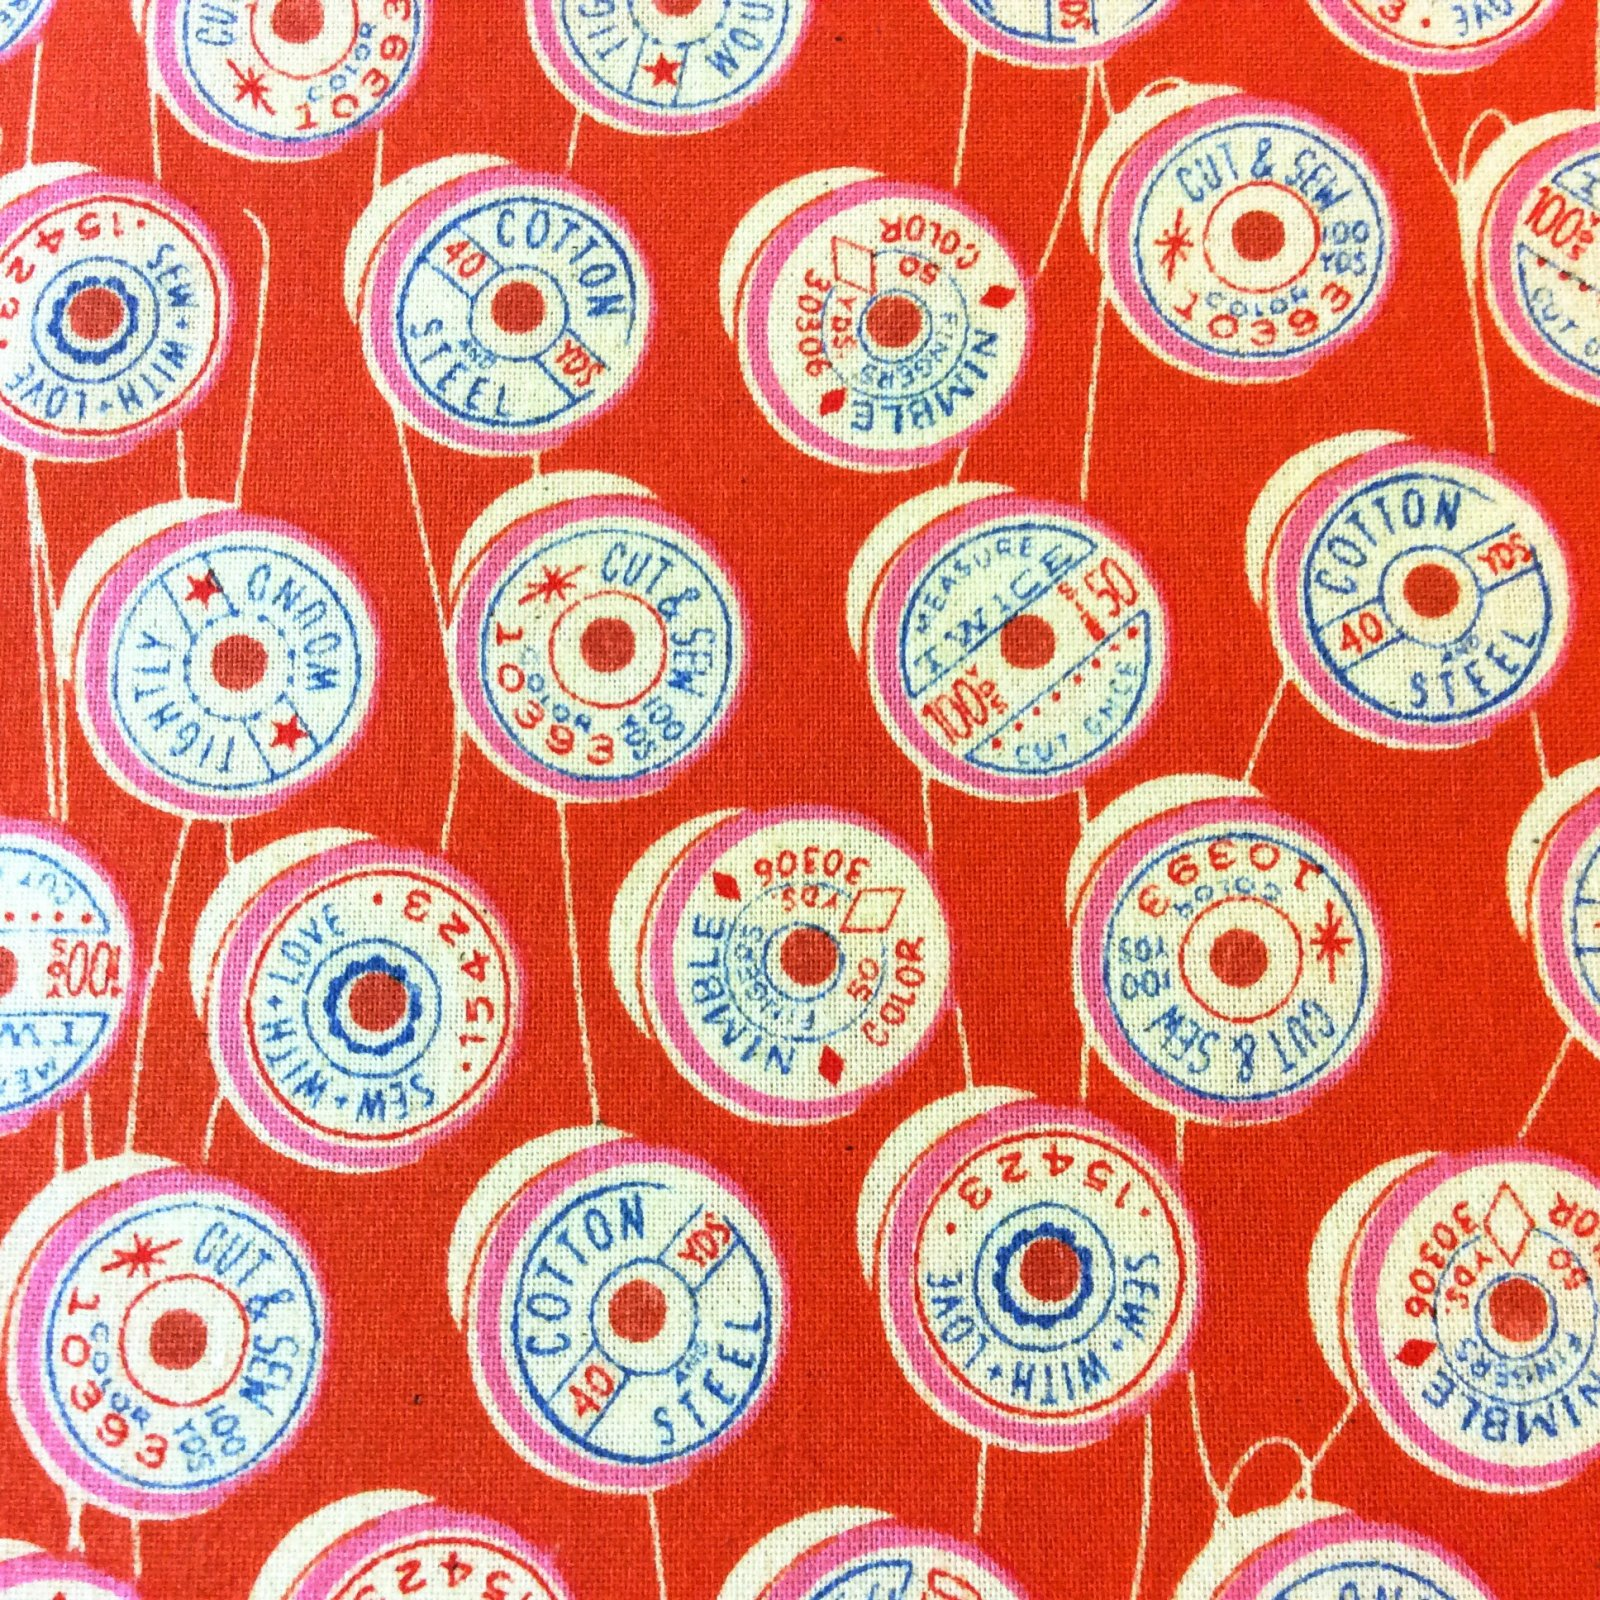 CTN74 Cotton + Steel Spool Thread Sewing Retro Vintage Sew Cotton Quilt Fabric